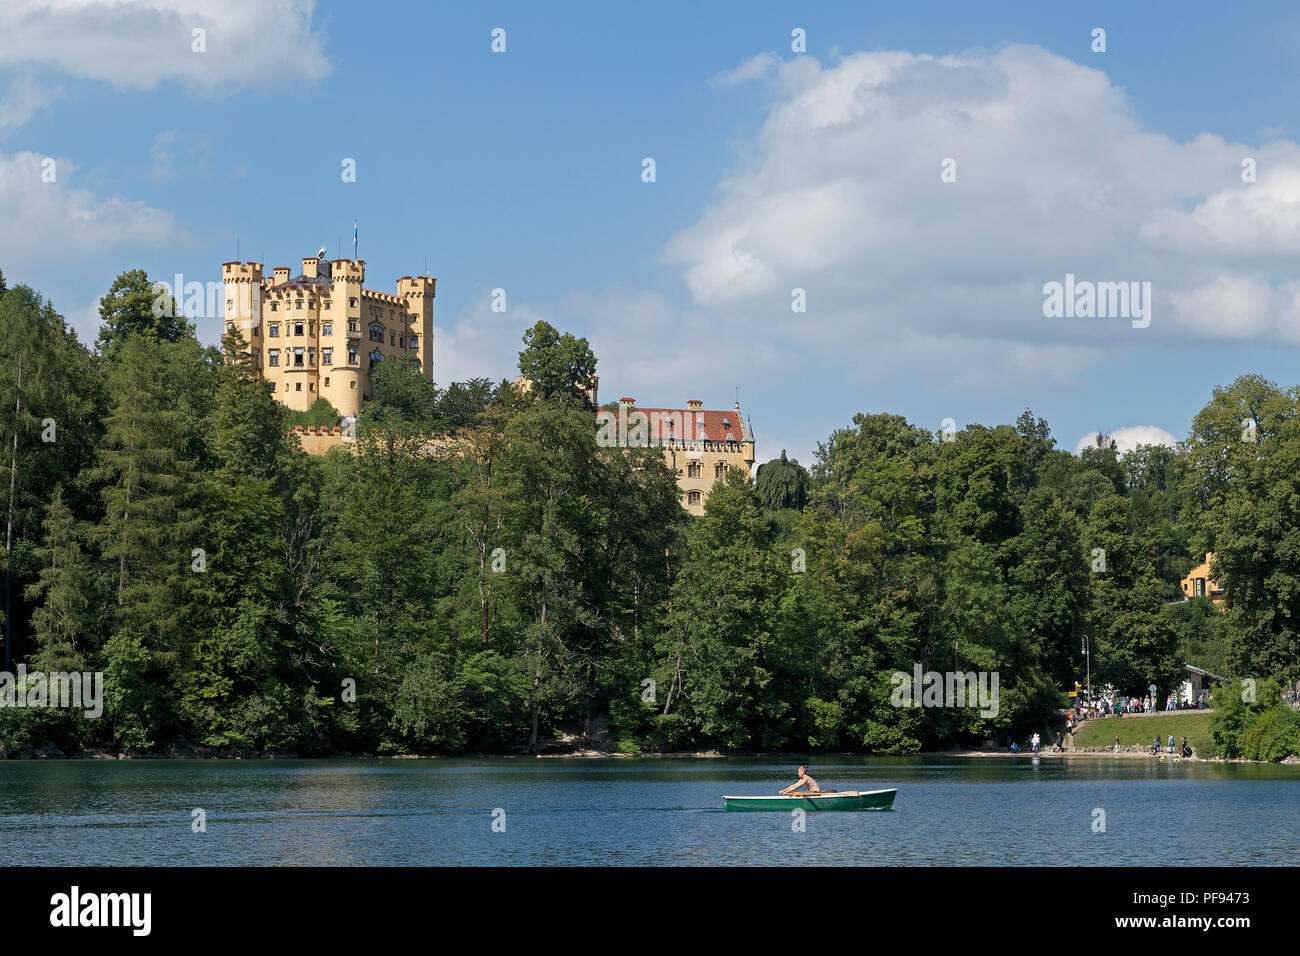 Hohenschwangau Castle with Alpsee (Lake Alp) in front, Hohenschwangau, Allgaeu, Bavaria, Germany - Stock Image